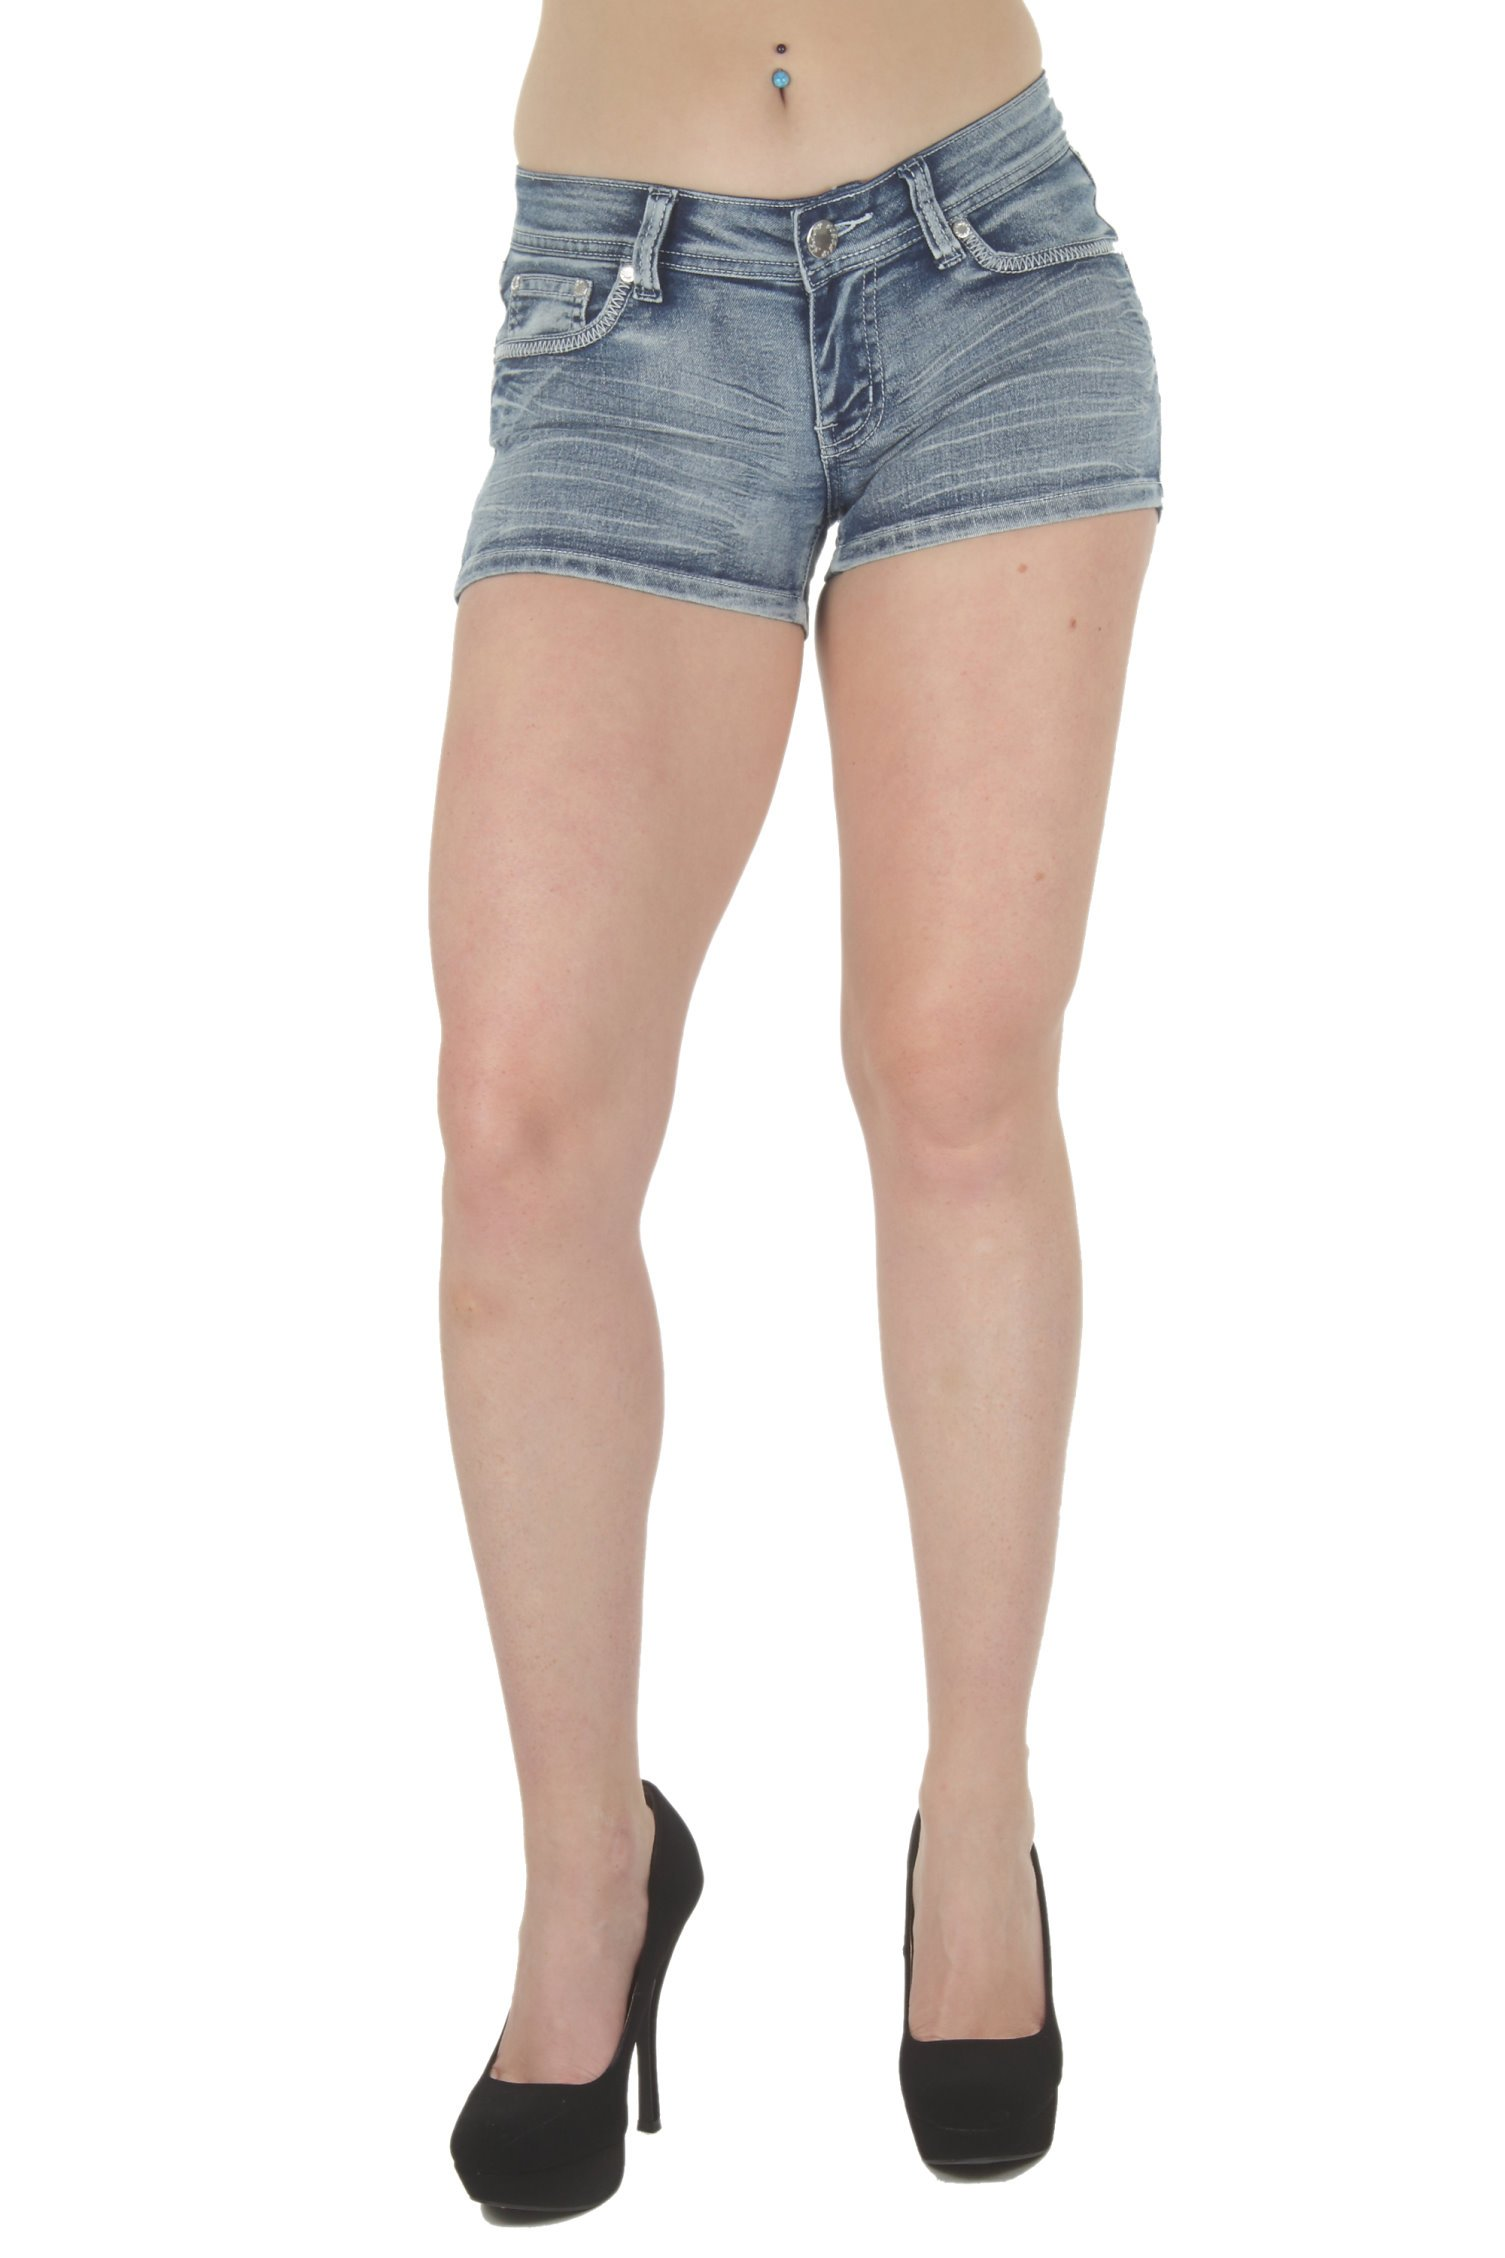 Fashion2Love F2L-35057MSH – Plus Size, Butt Lifting, Levanta Cola, Denim Booty Shorts in Washed Blue Size 16